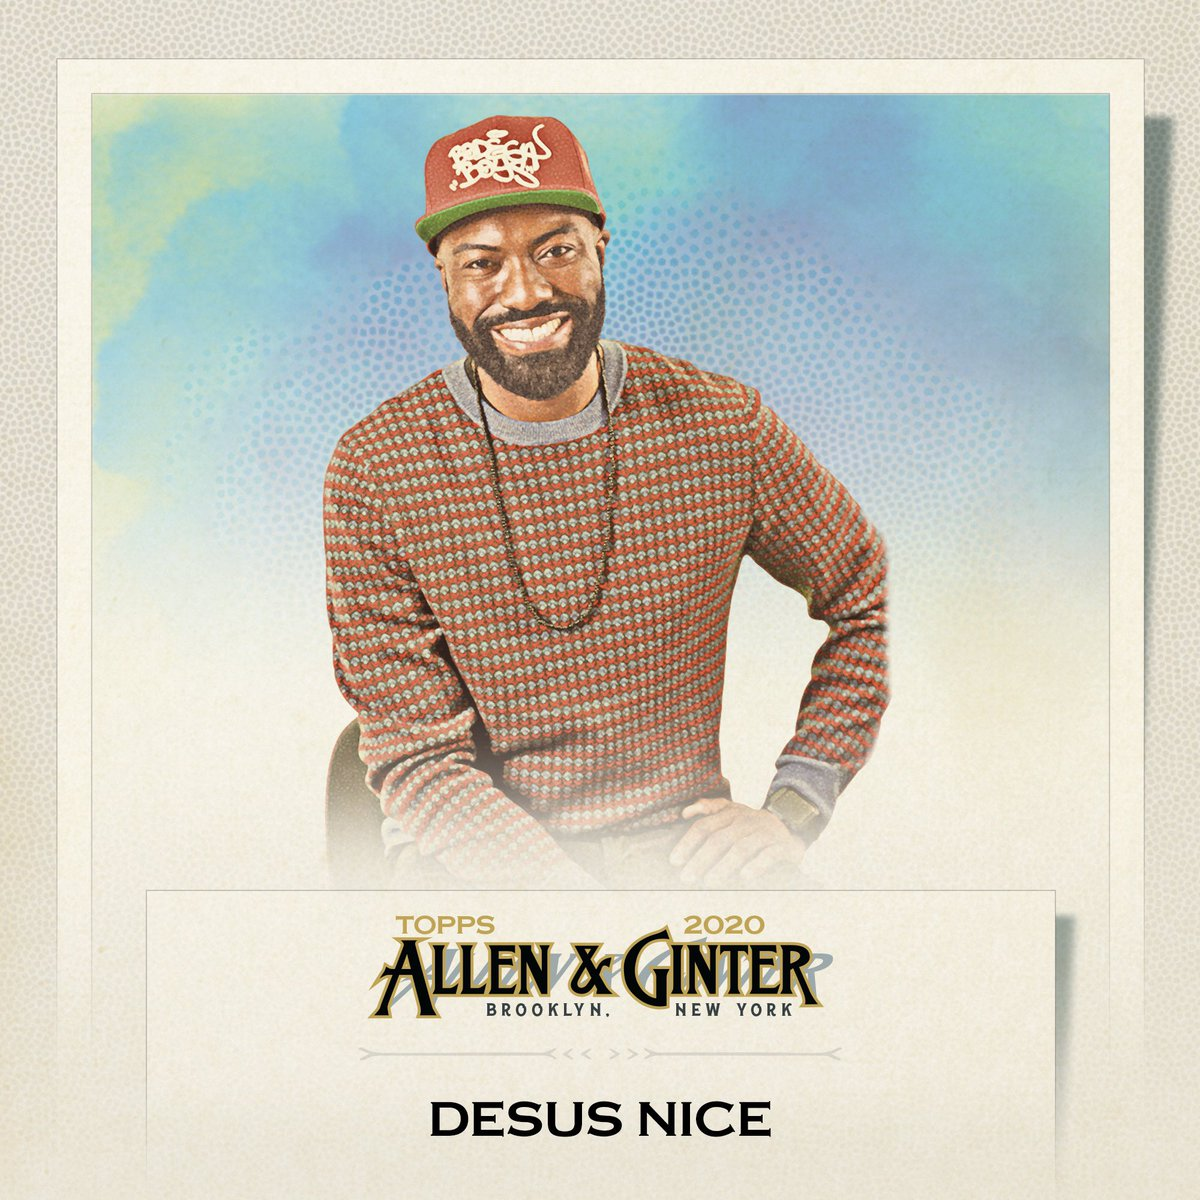 Ya boys got @topps cards! Check us out in the 2020 Topps & Allen Ginter...available Sept 16